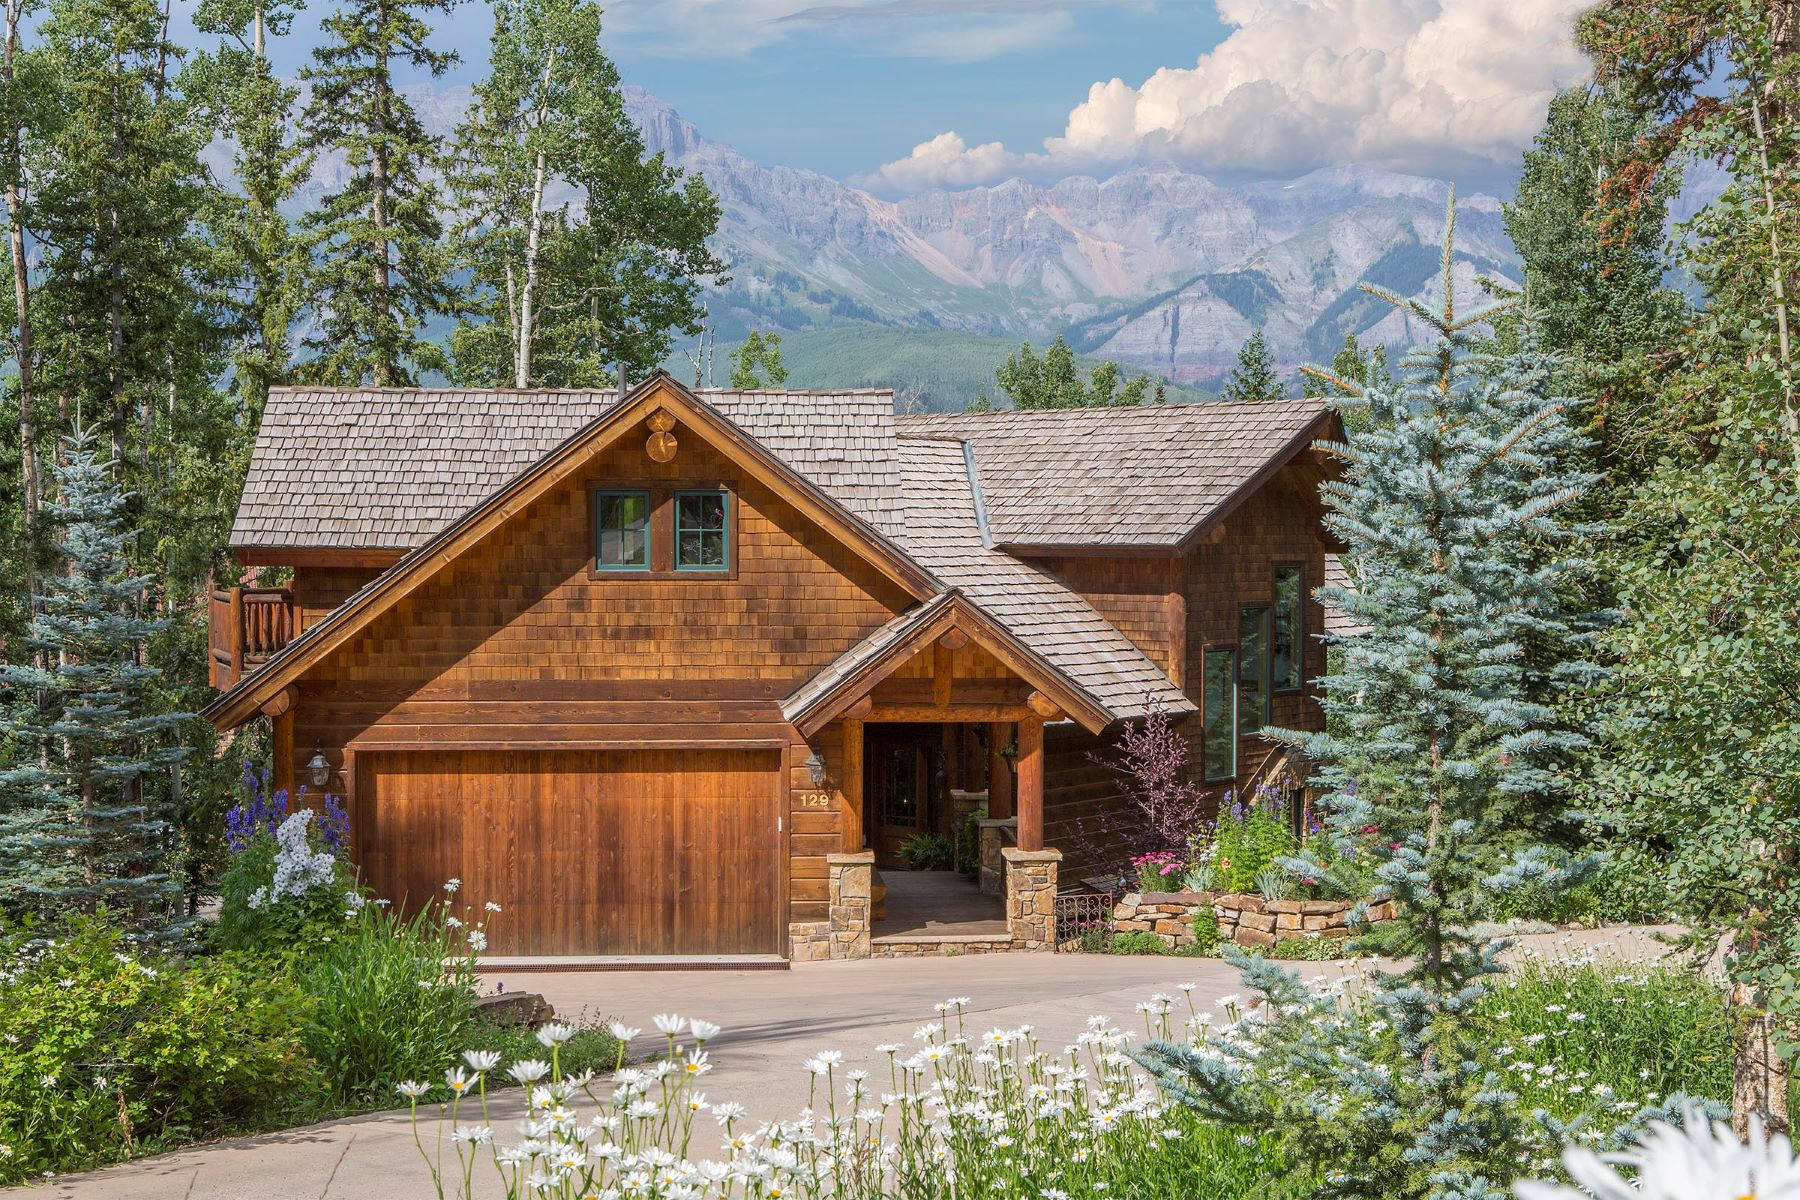 Single Family Home for Sale at Epley Residence 129 Benchmark Drive Mountain Village, Telluride, Colorado, 81435 United States